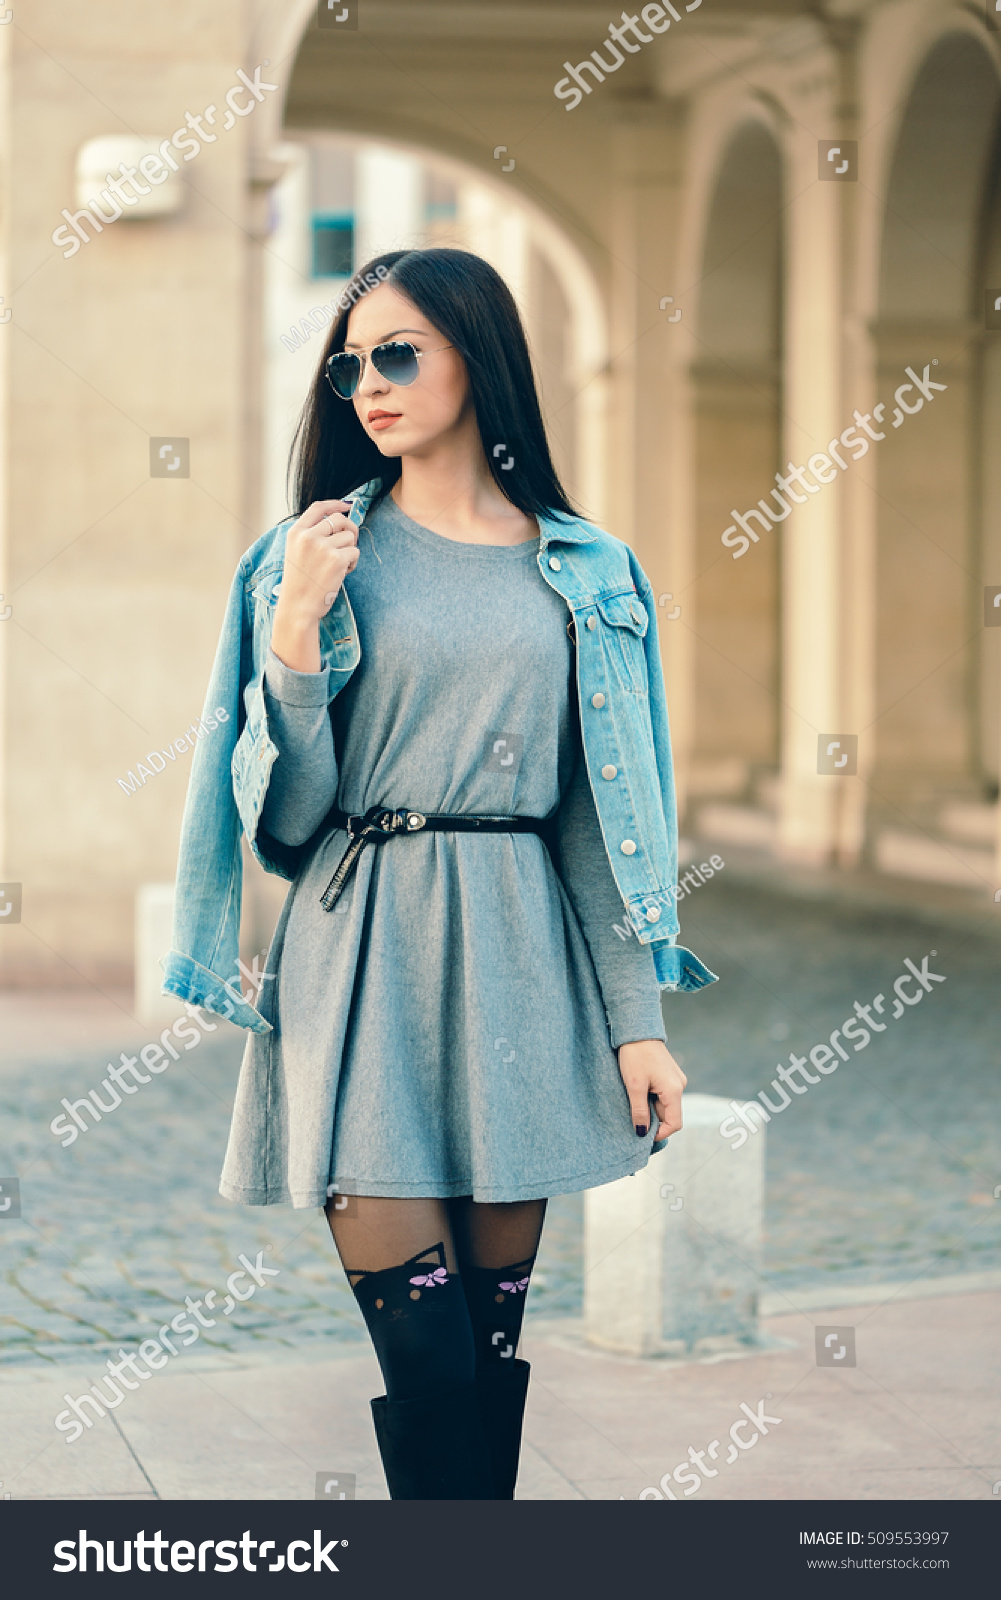 9fb711664480 Young Fashion Girl Style Denim Jacket Stock Photo (Edit Now ...